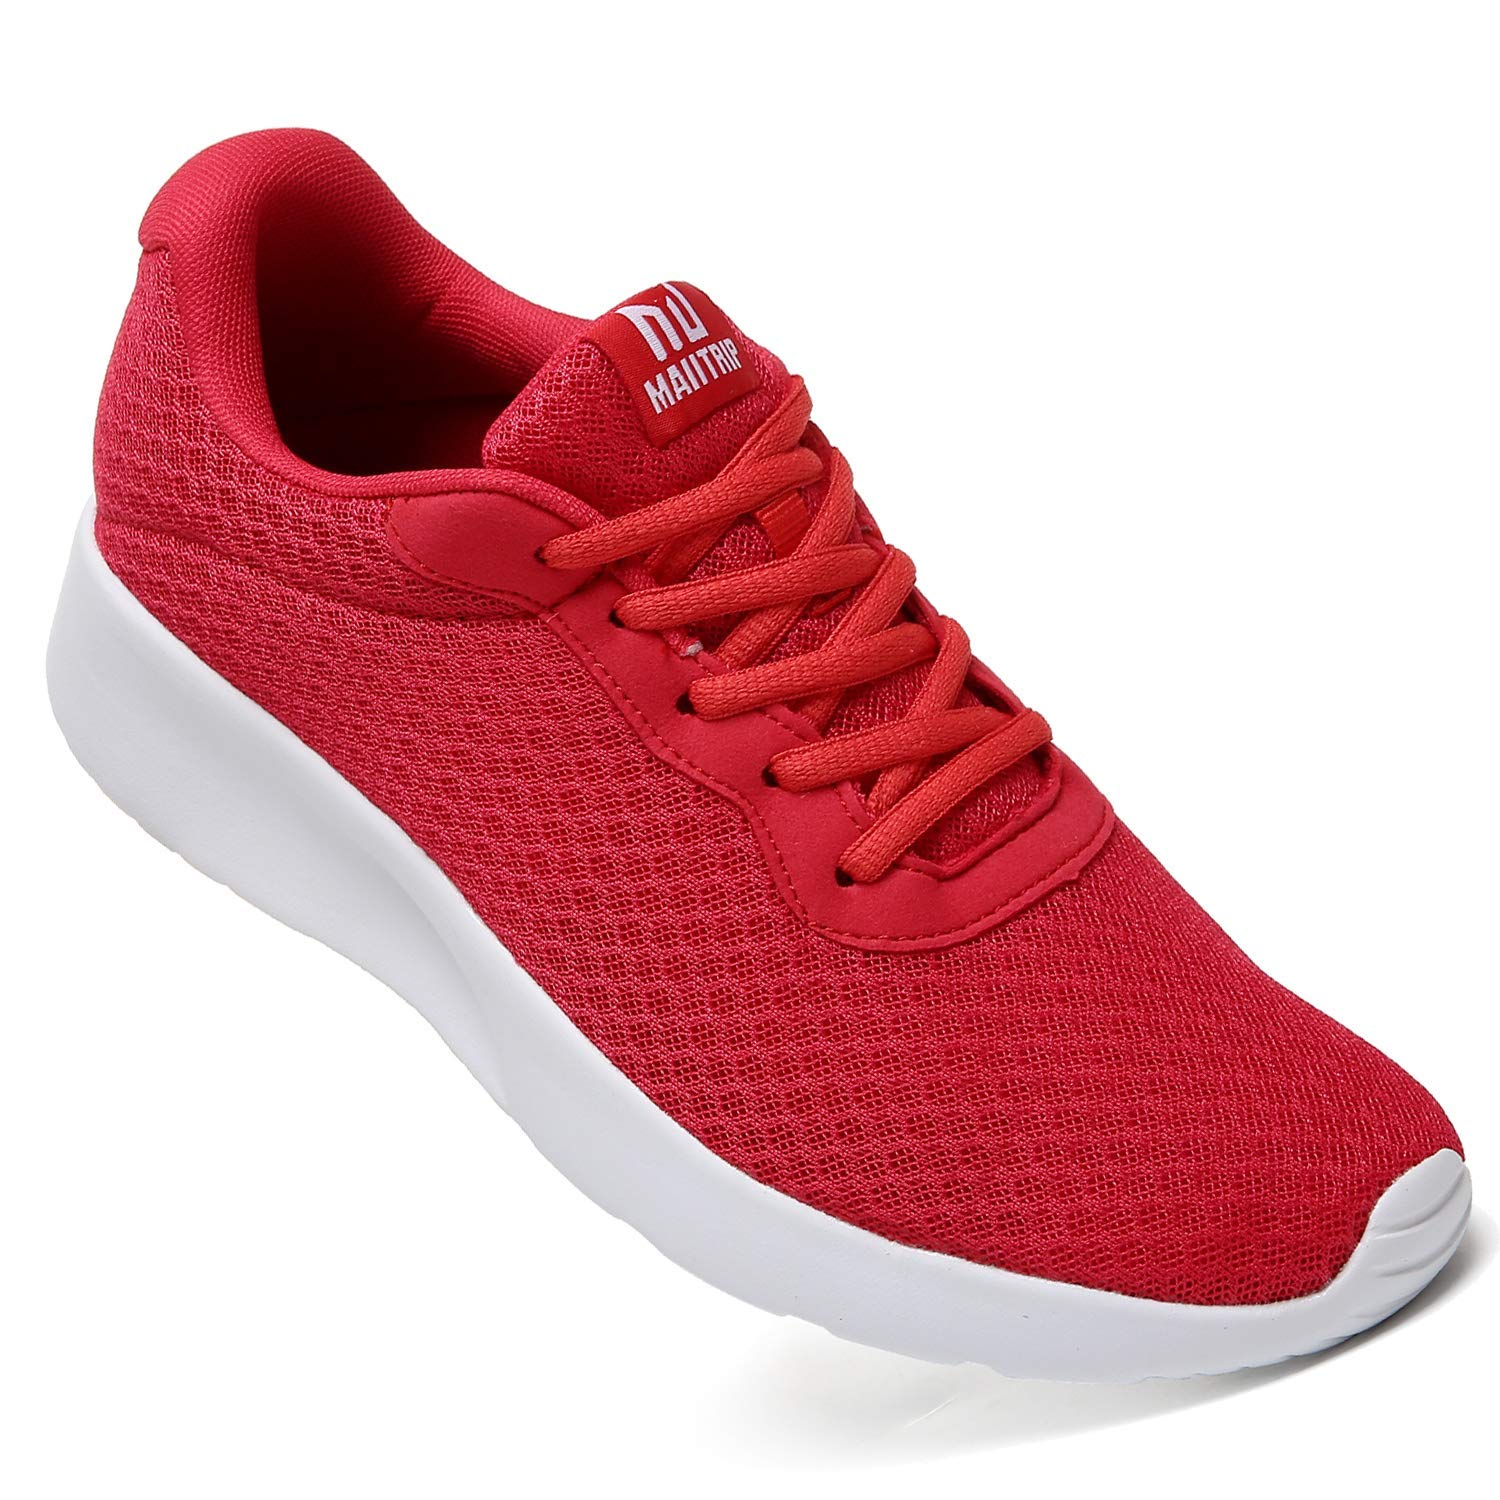 MAITRIP Mens Gym Shoes,Athletic Running Shoes,Lightweight Breathable Mesh Casual Tennis Sports Workout Walking Sneakers,Red,Size 7